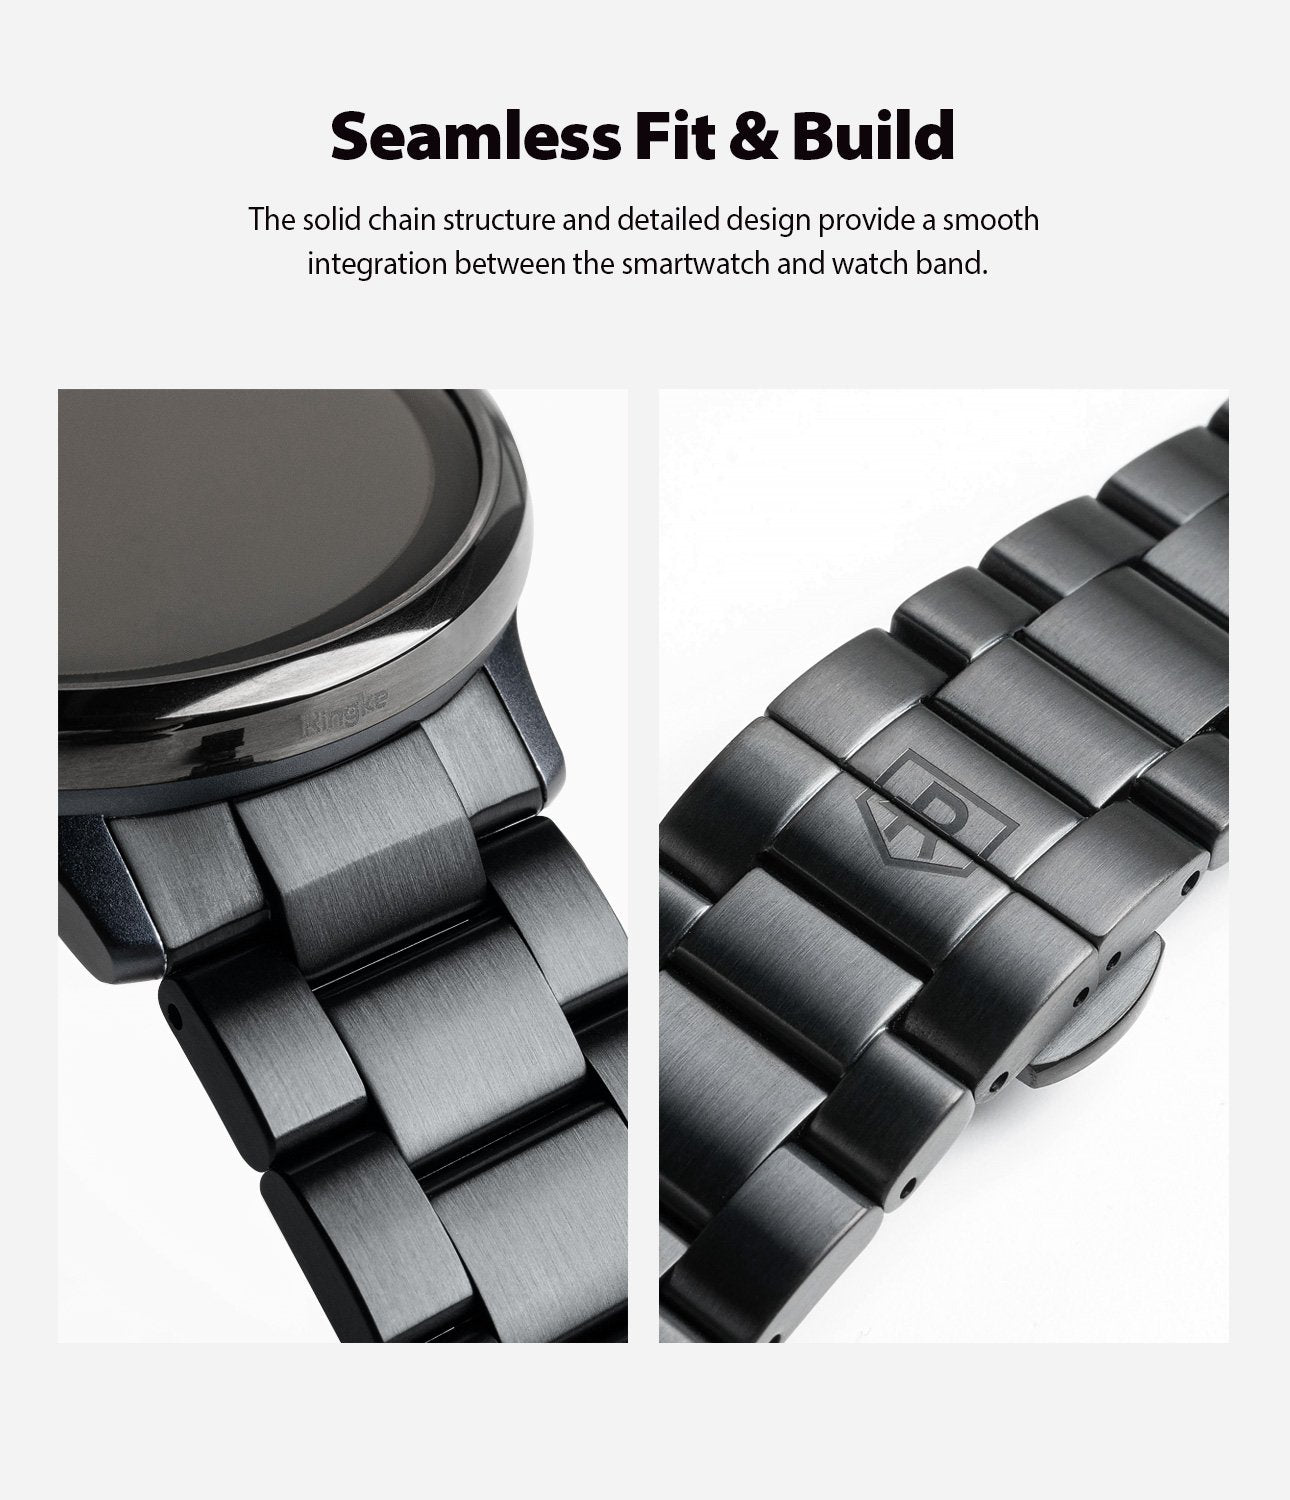 ringke metal one band stainless silver watch band for galaxy watch active 2 44mm seamless fit and build with the solid chain structure